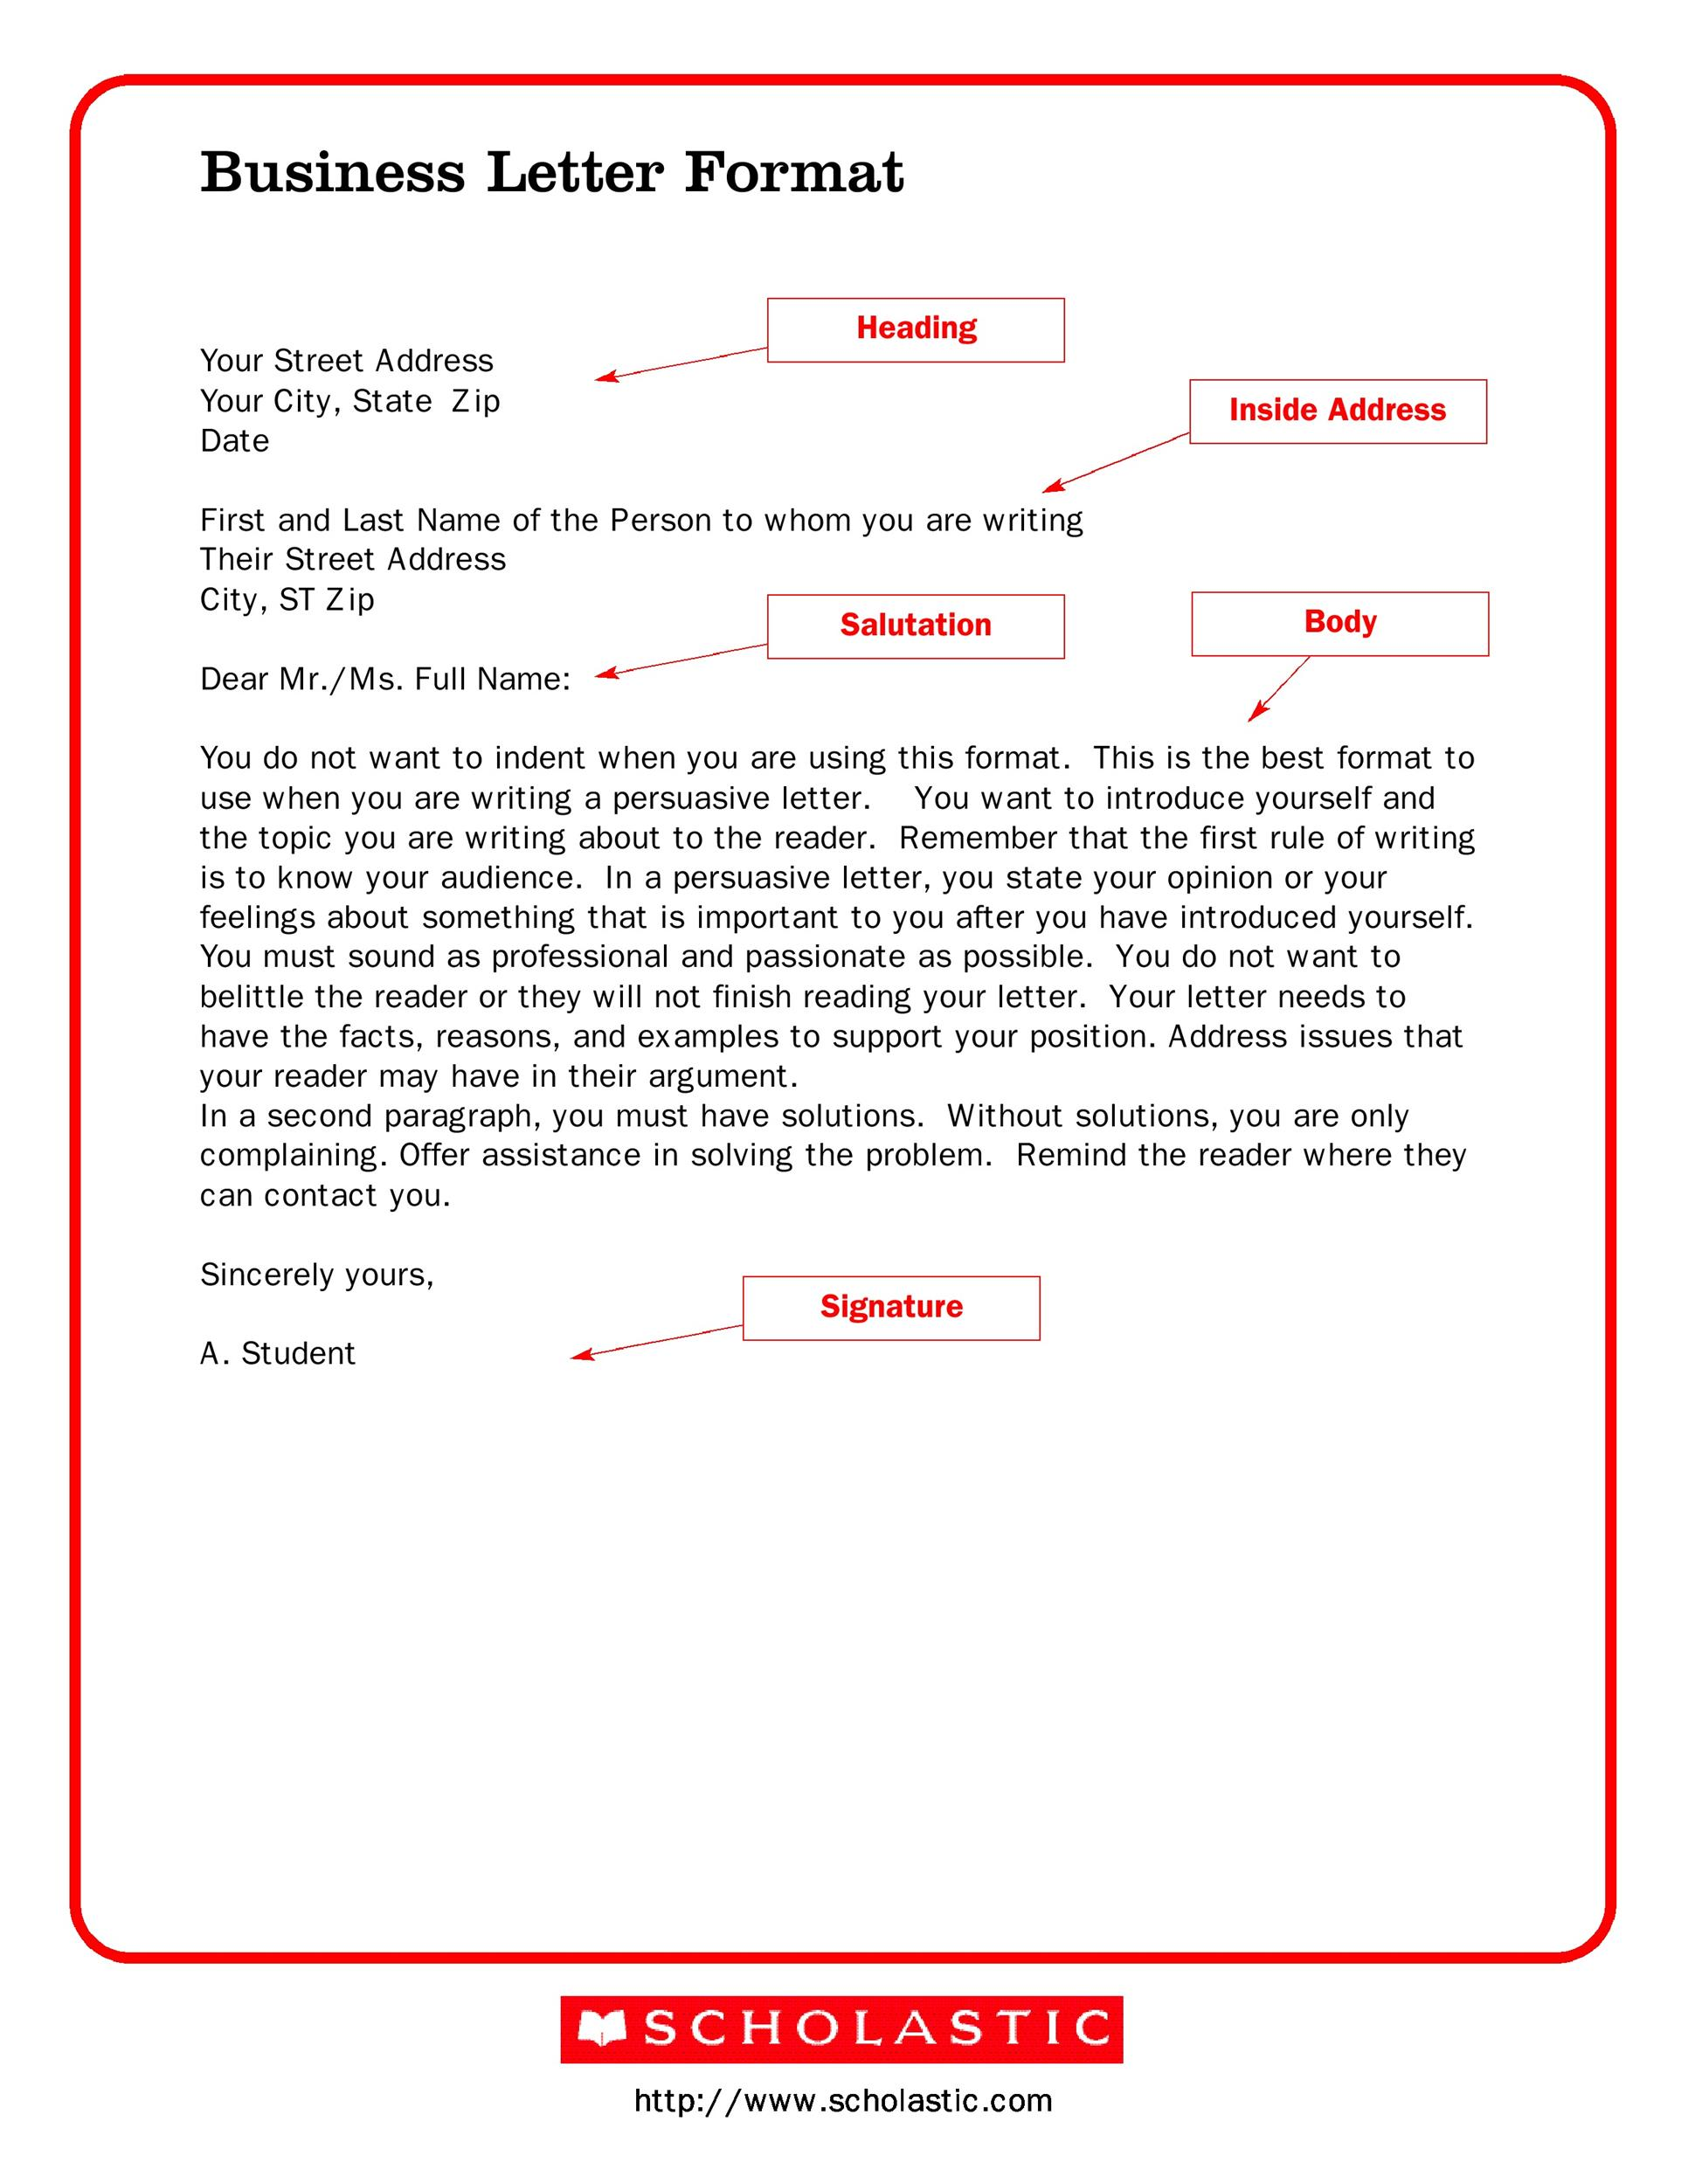 format of business letter writing Format of business letters: full block, modified block and indented or semi-block layouts you like it: dixie invites you to go to the modified block page on her site where you can try out a modified block format generator, see additional business letter elements and even practice writing a business letter in modified format.